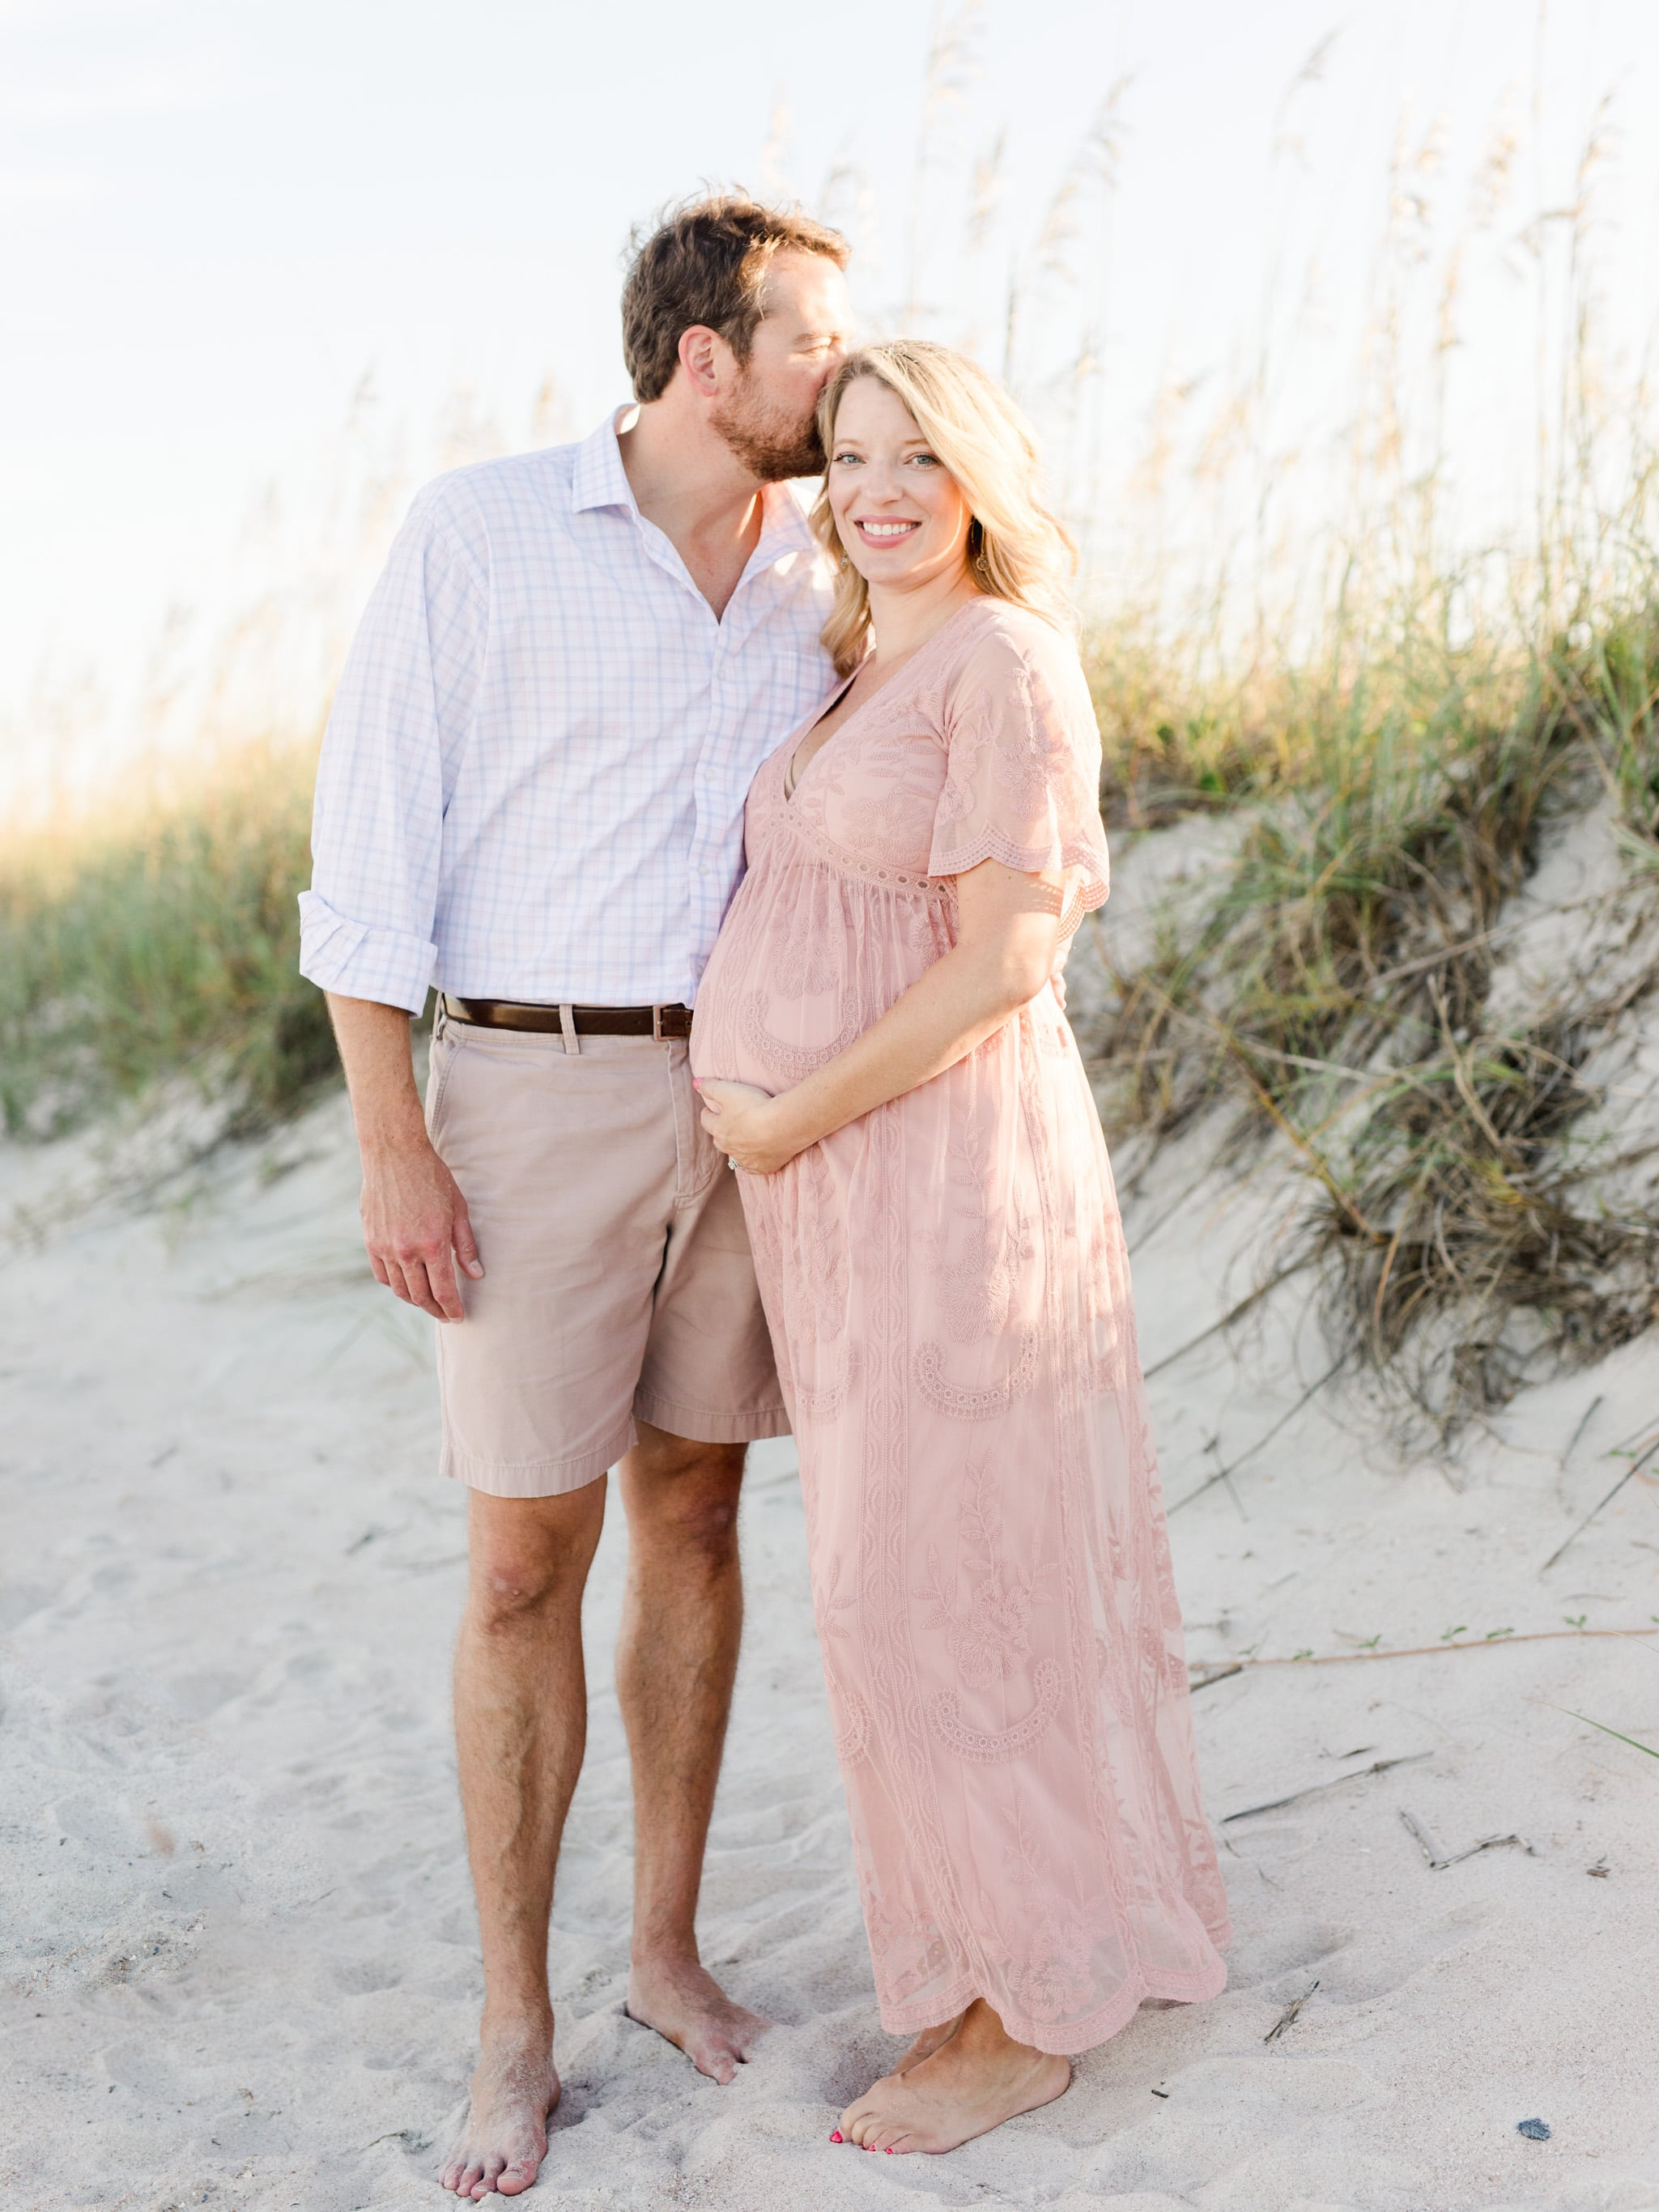 Mom and Dad taking maternity pictures, embracing on Tybee Island Georgia